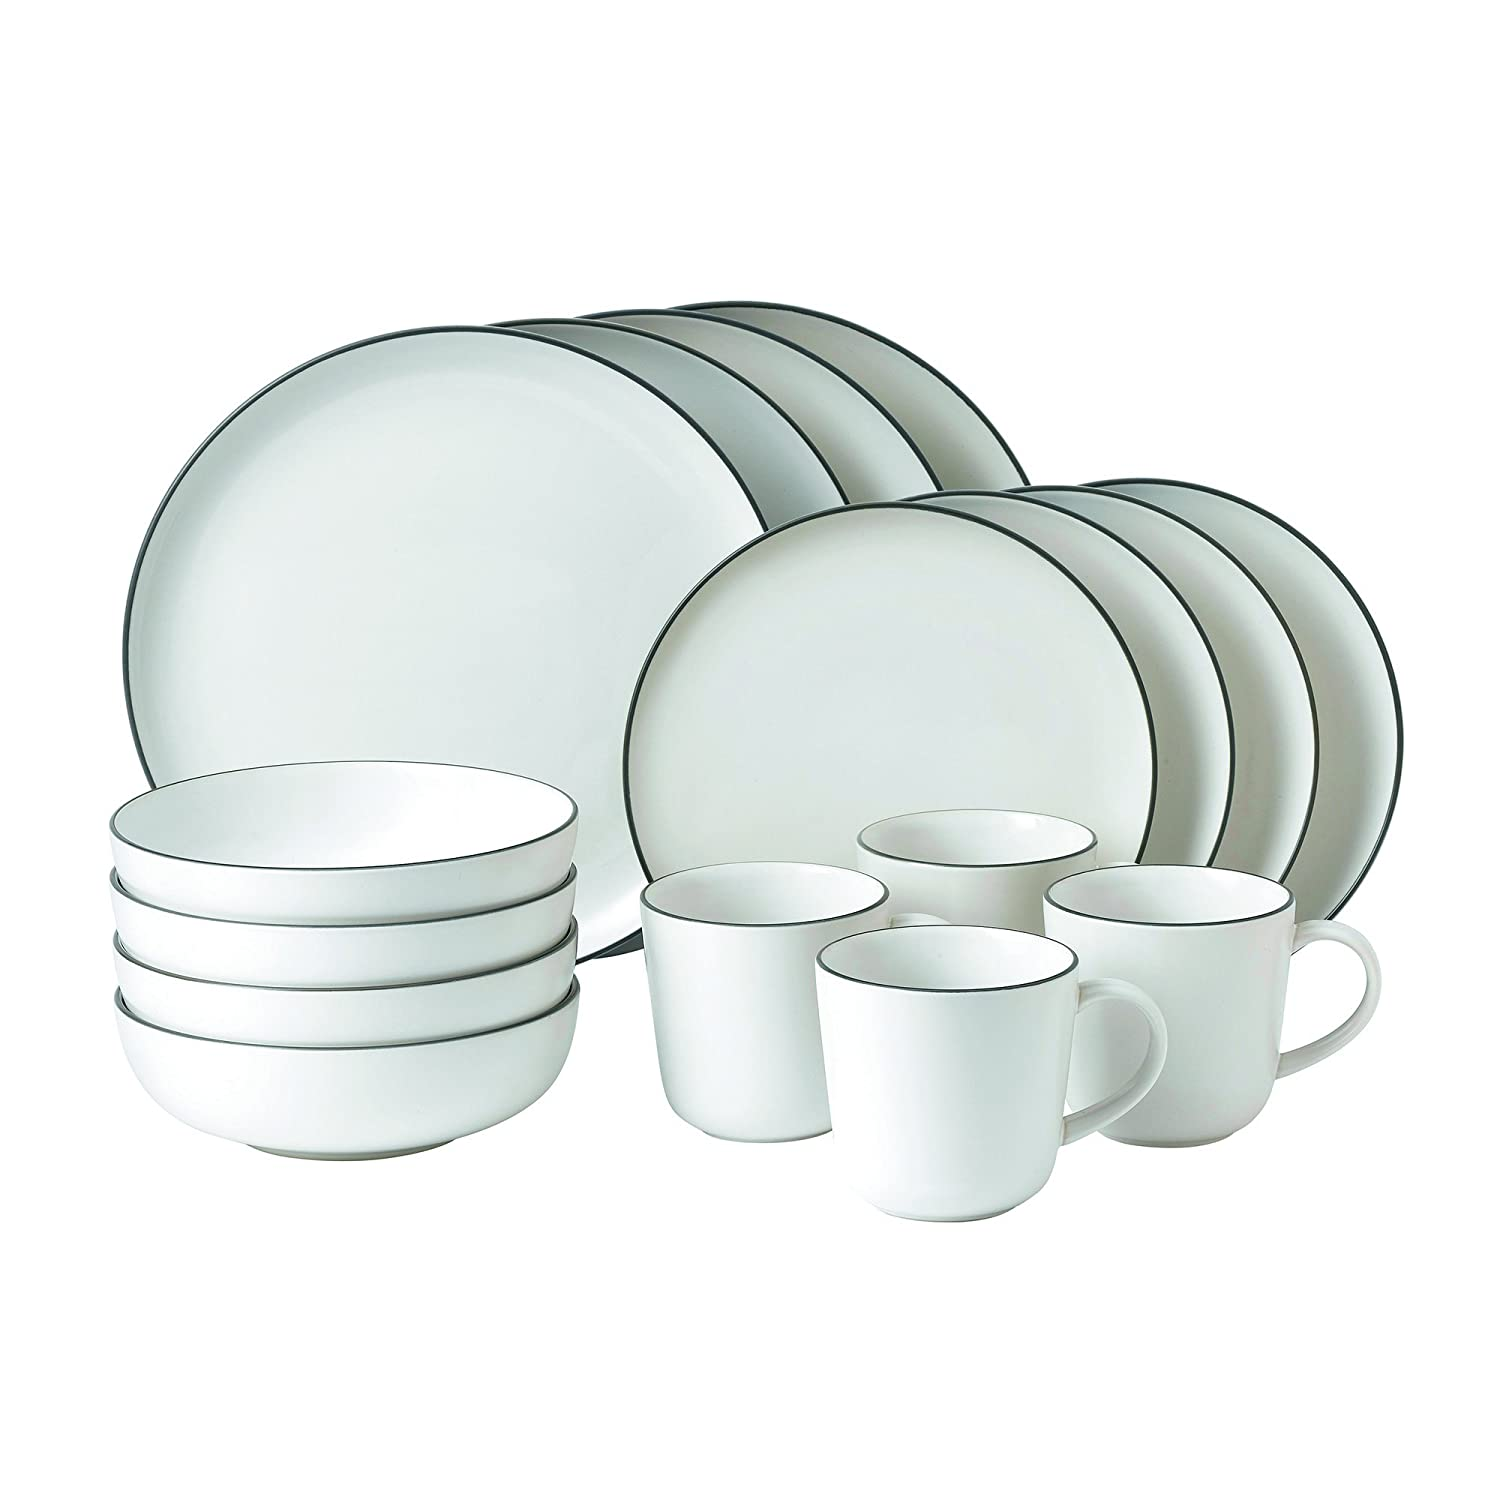 Breadstreet by Gordon Ramsay 16-Piece Set Royal Doulton 8772025796